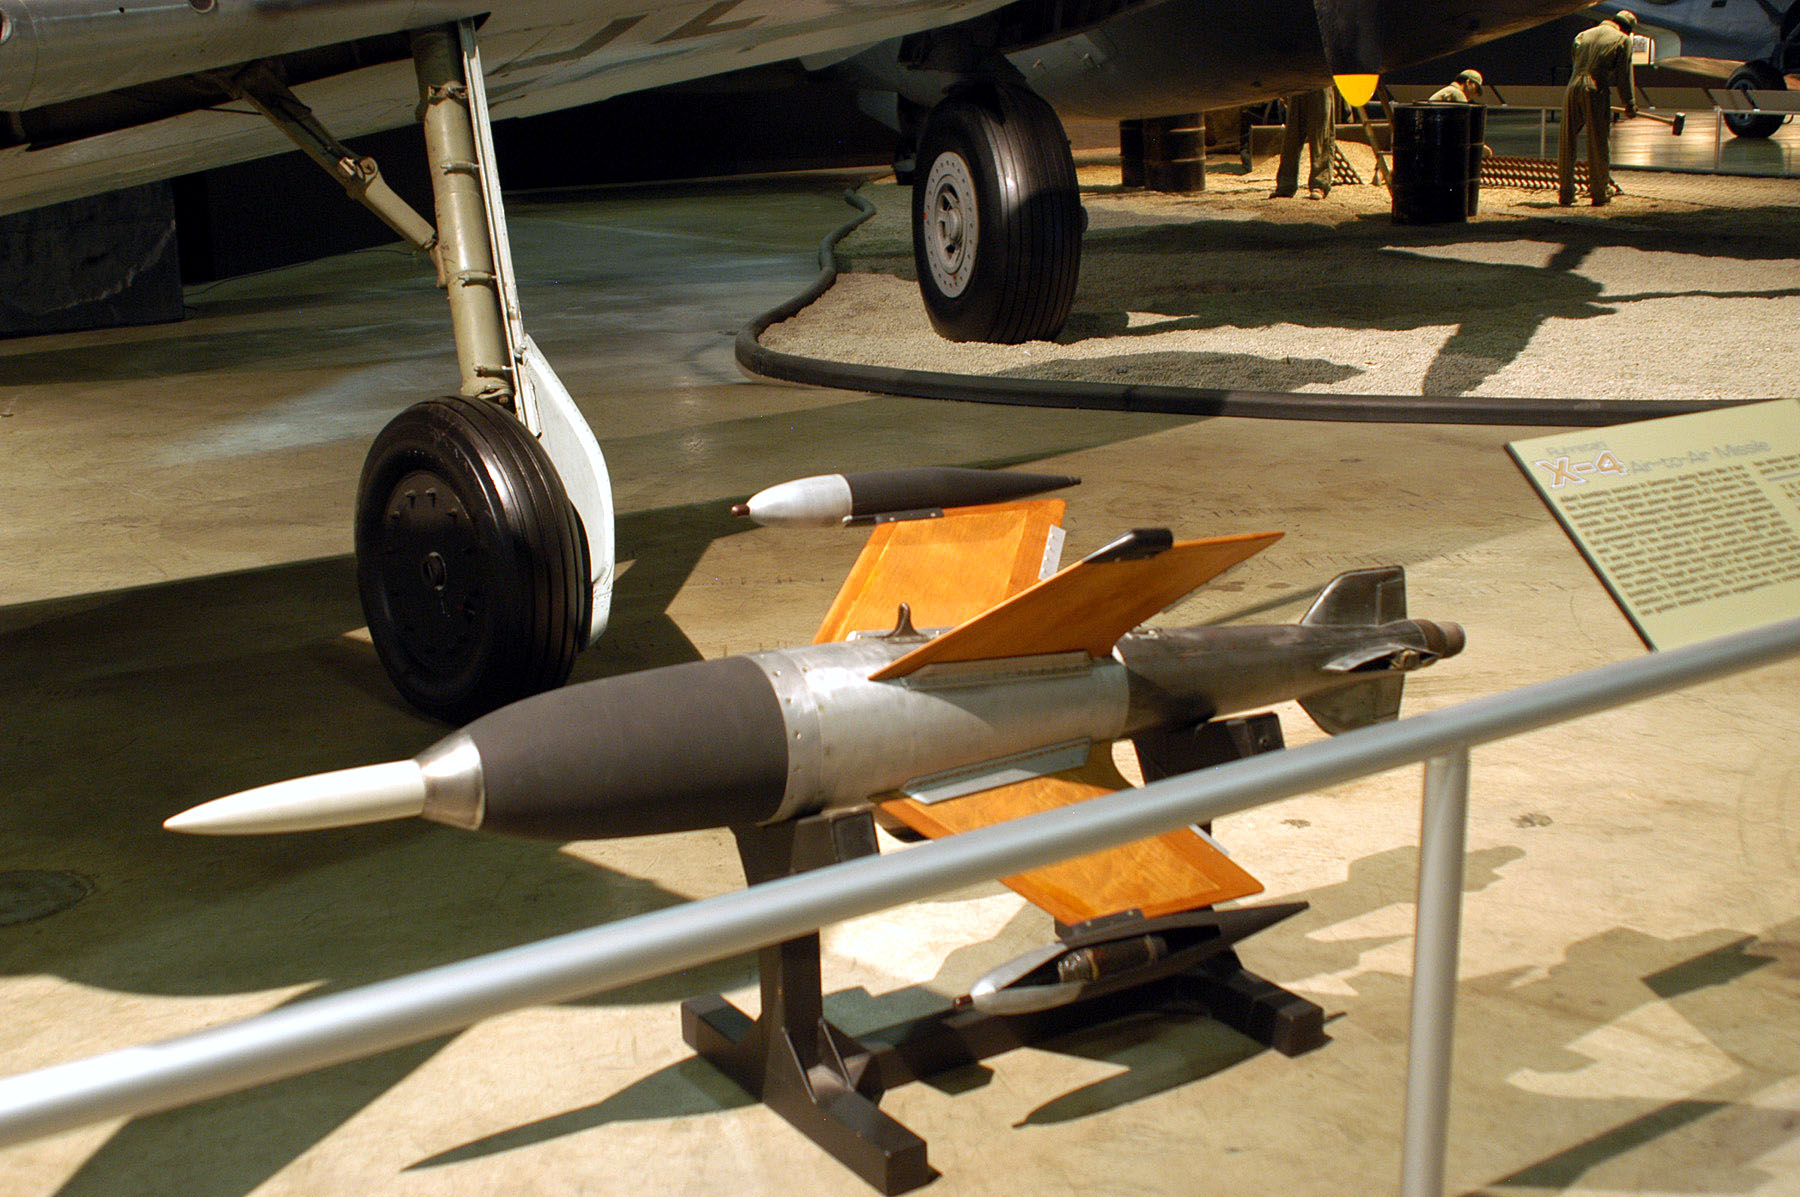 Ruhrstahl X 4 Air To Air Missile Gt National Museum Of The